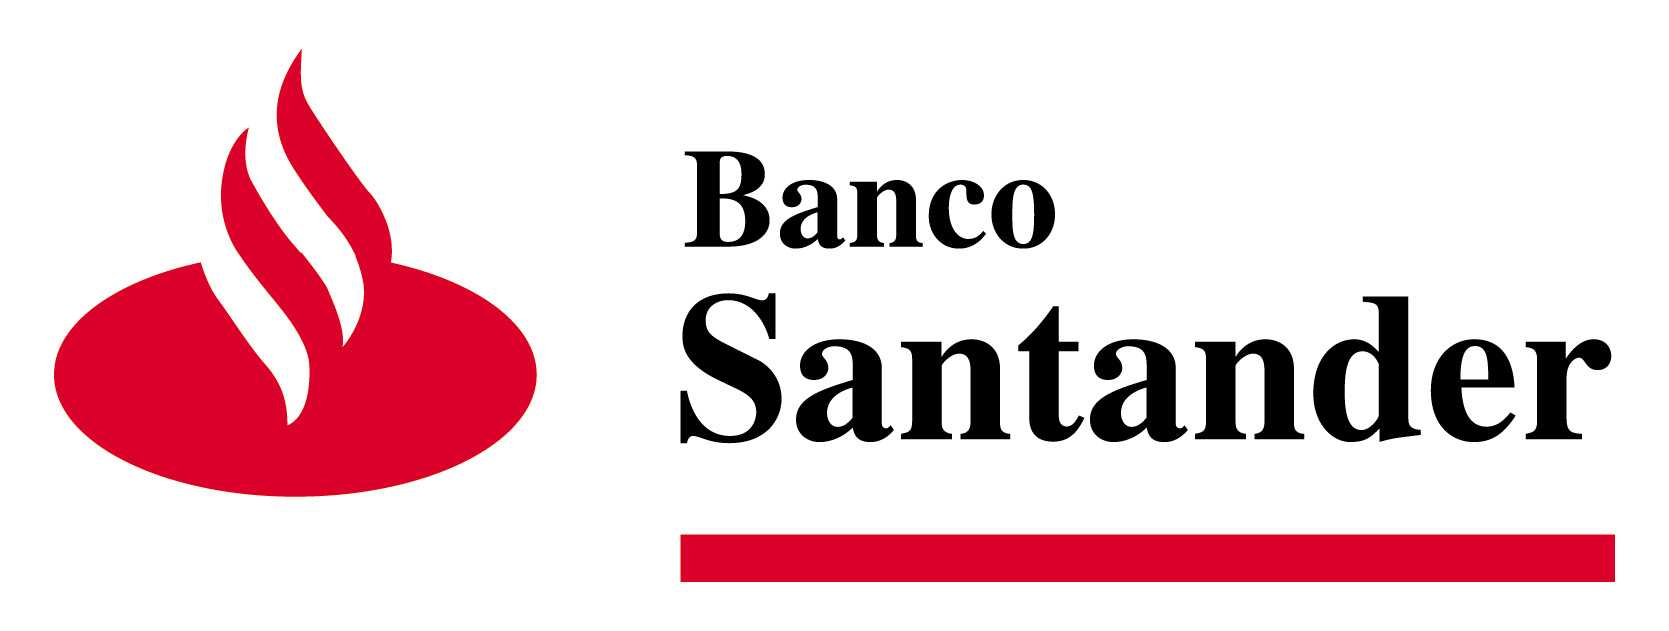 should you buy banco santander s a adr san